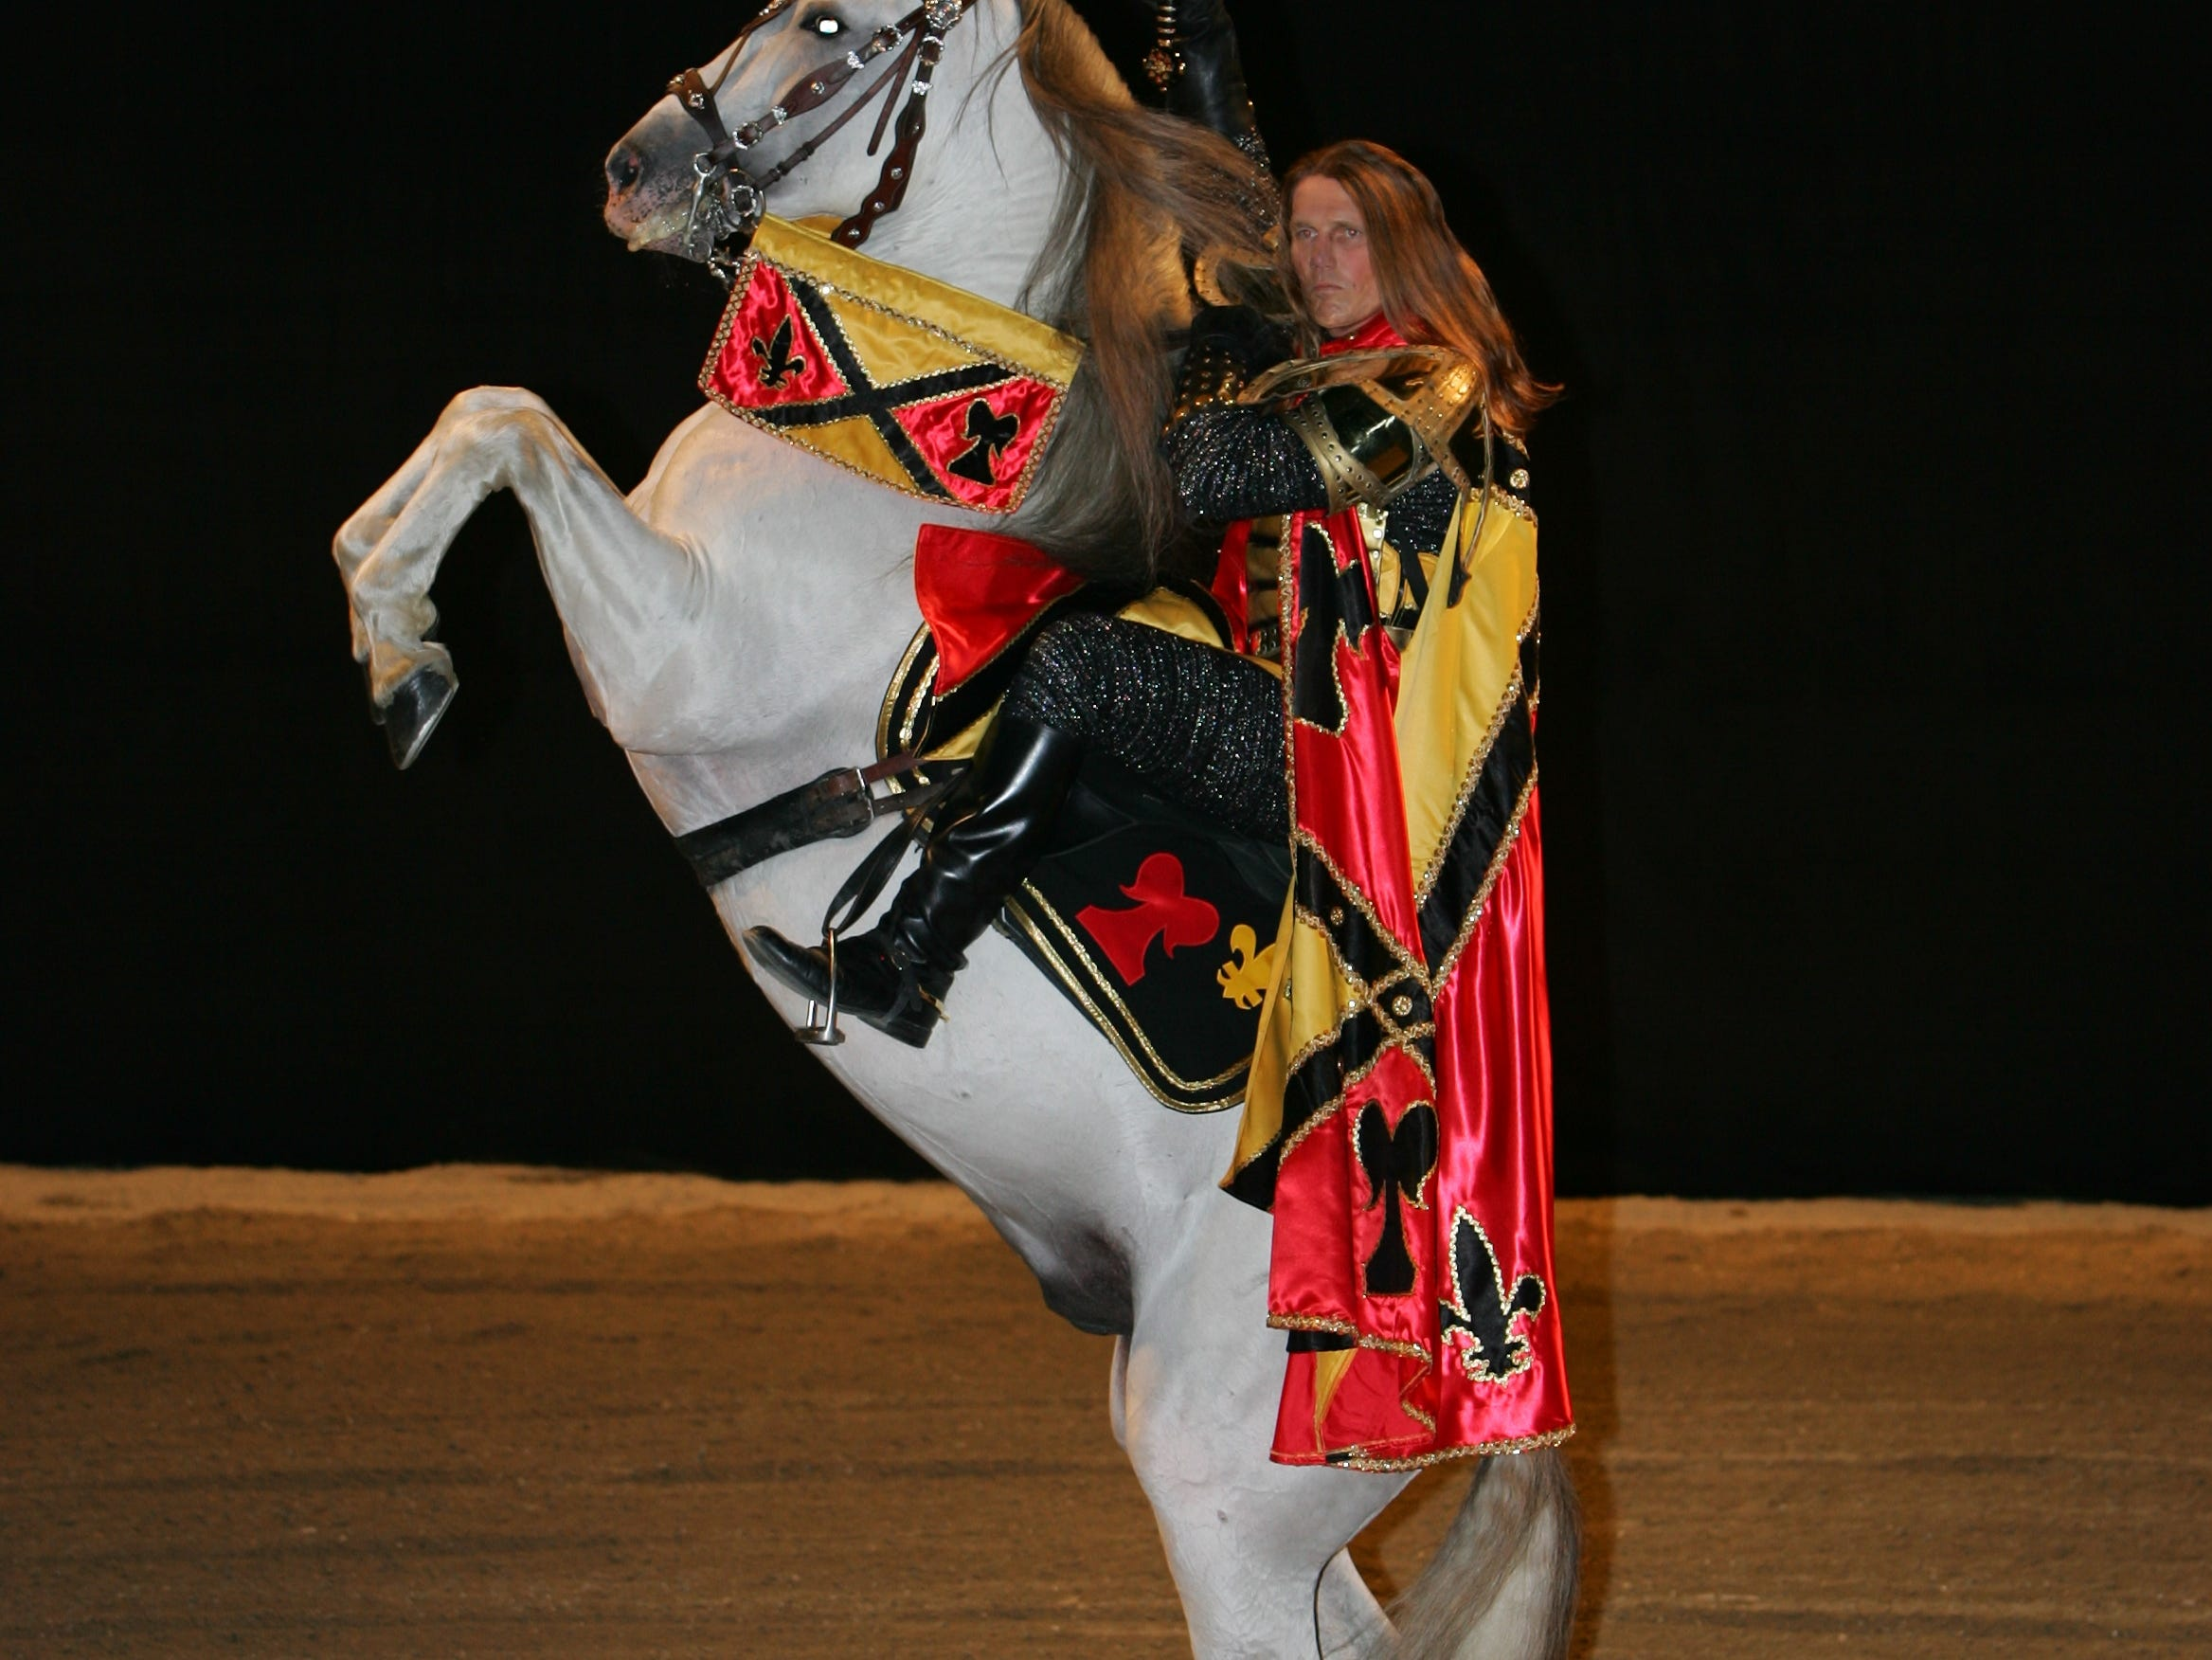 Tim Baker performing at Medieval Times.